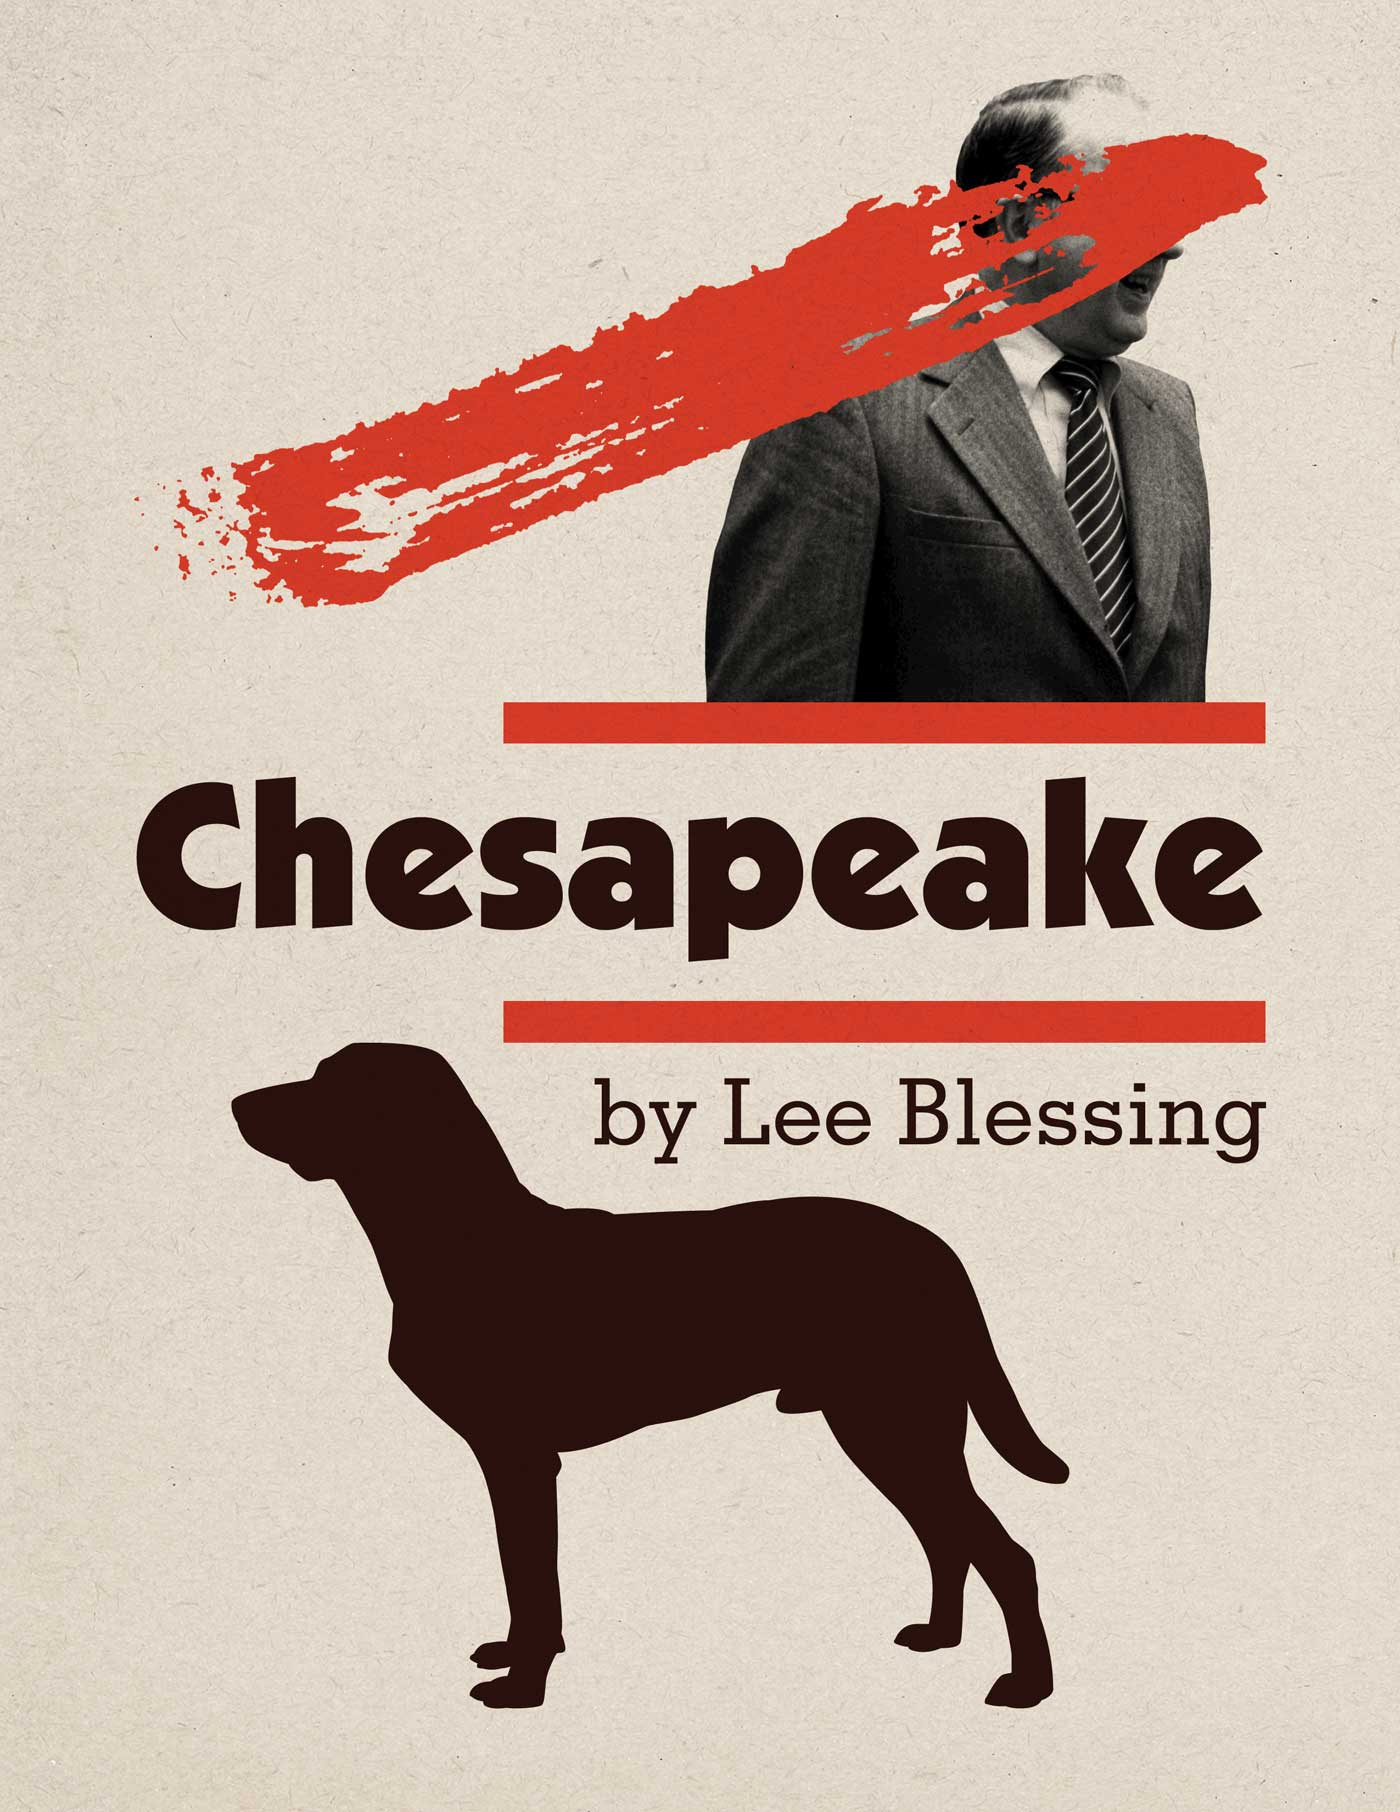 Chesapeake poster